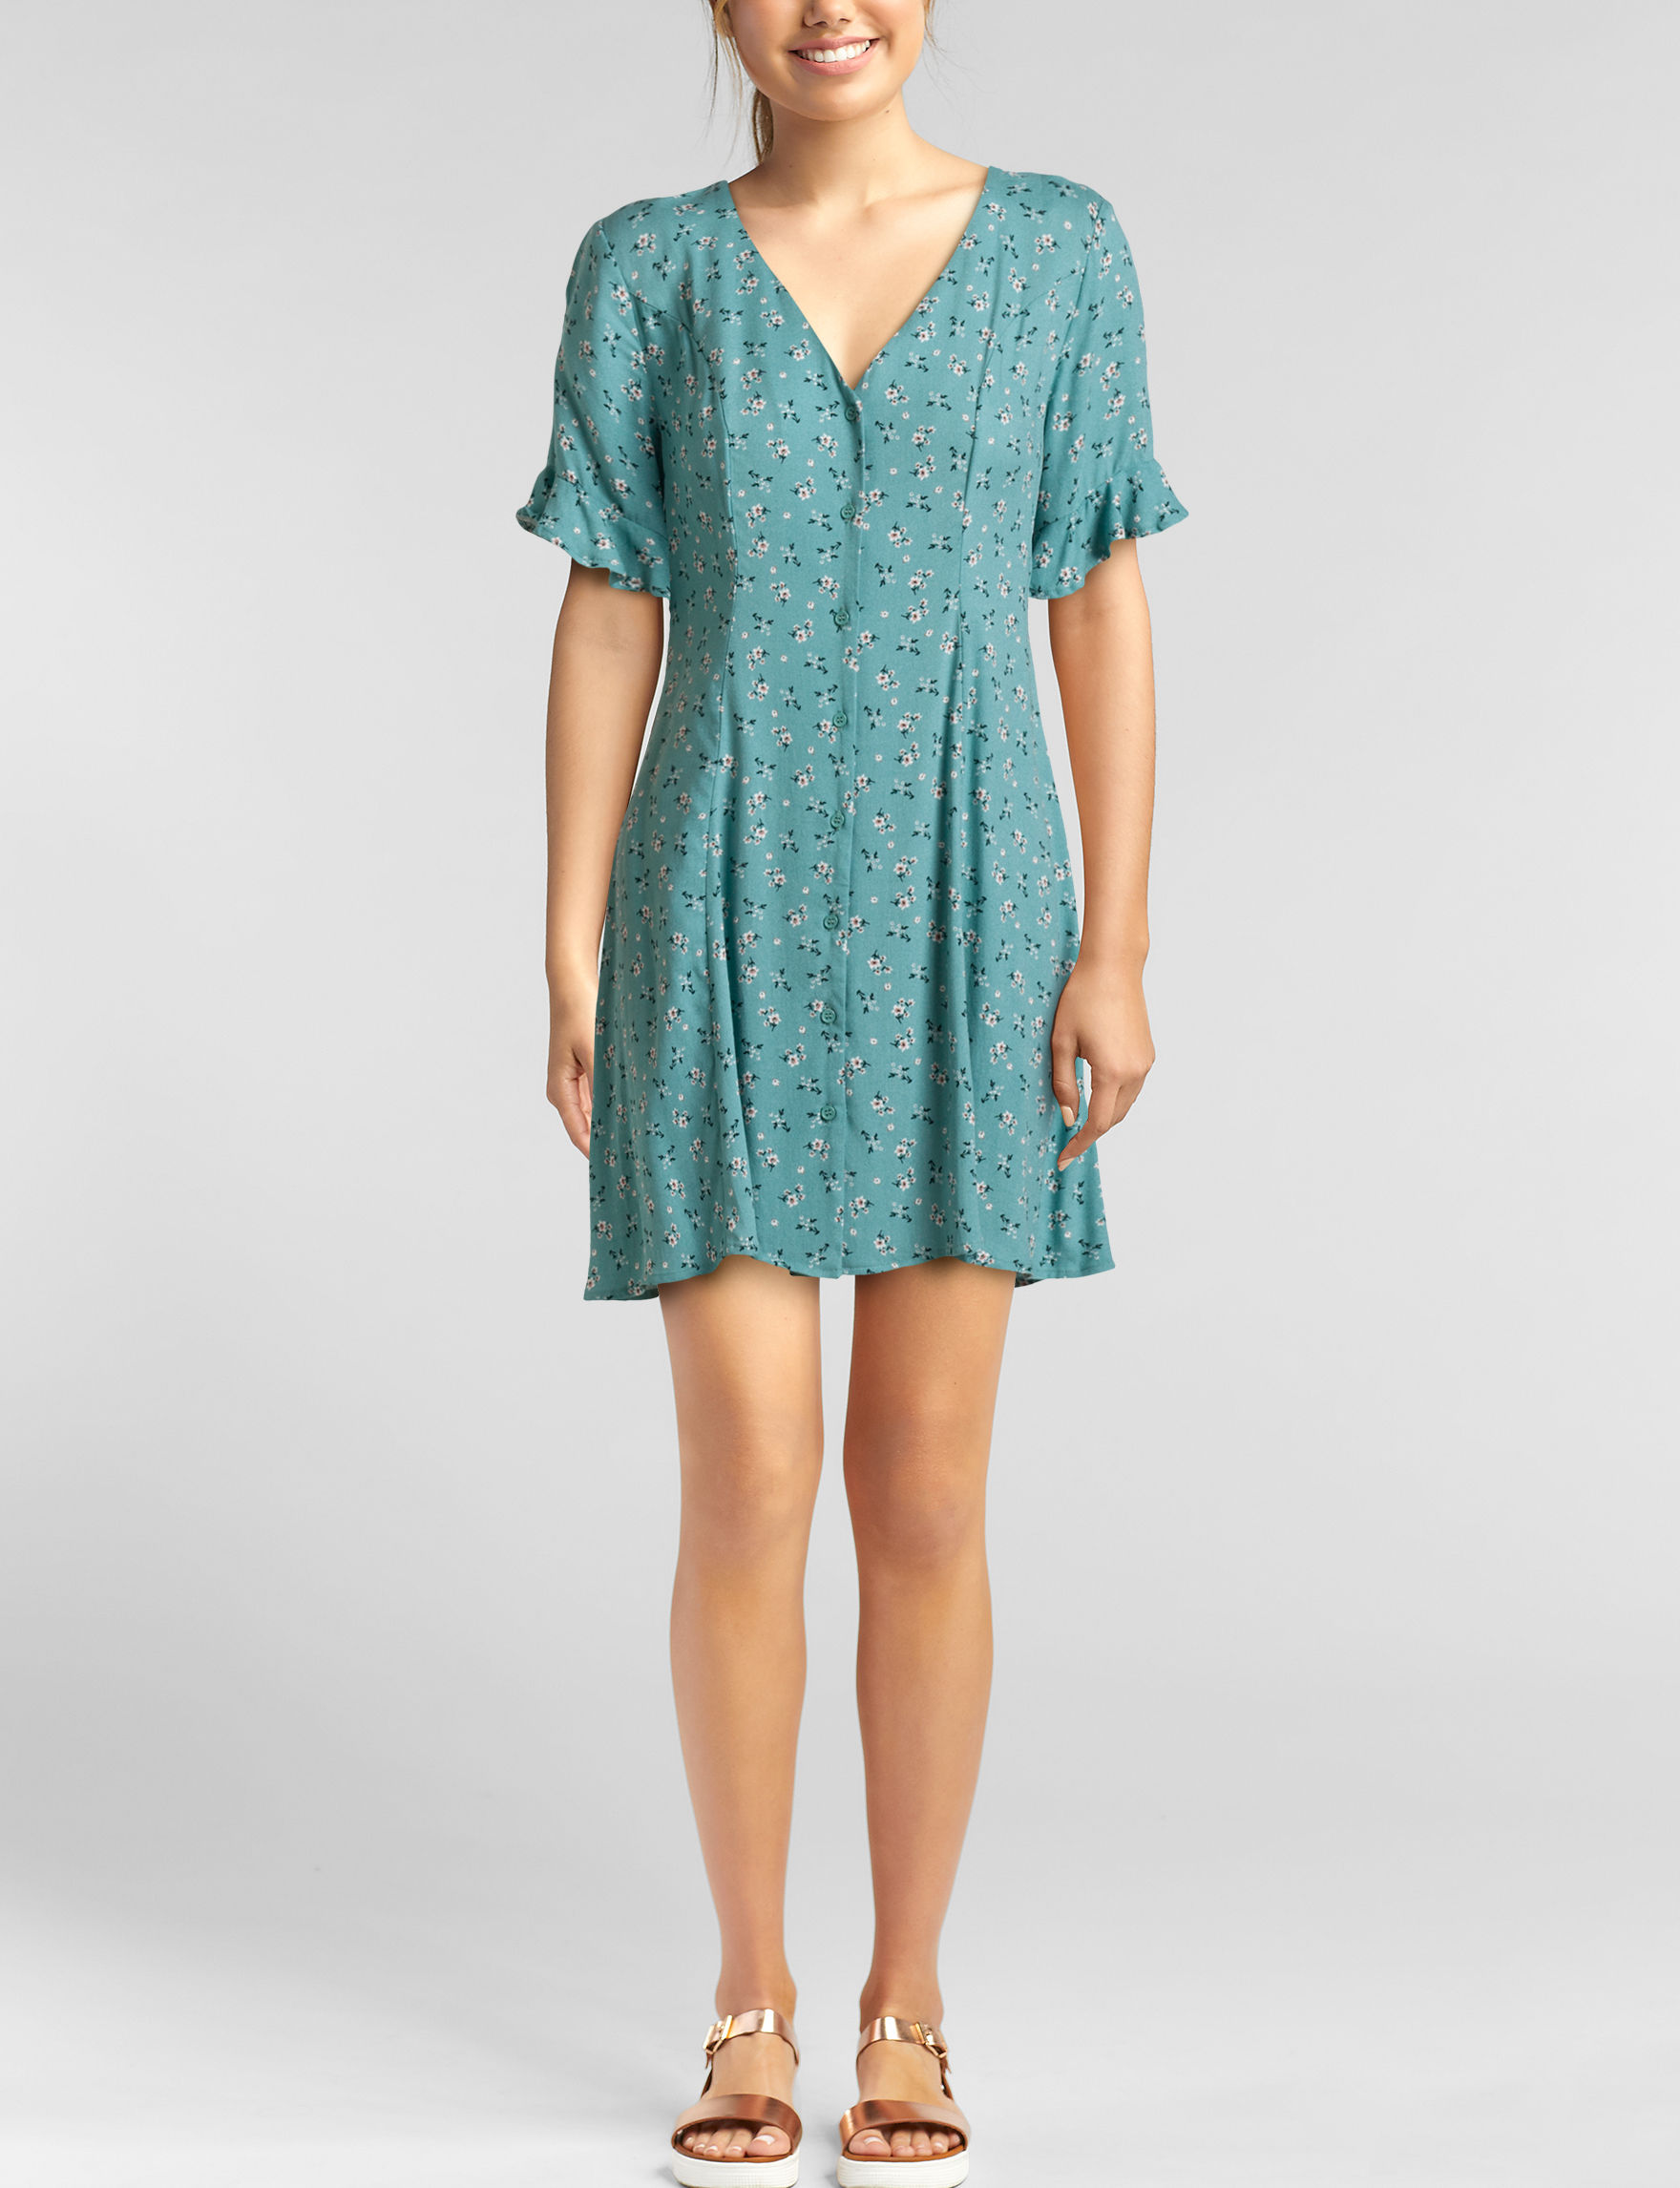 Love Fire Teal Everyday & Casual Shift Dresses